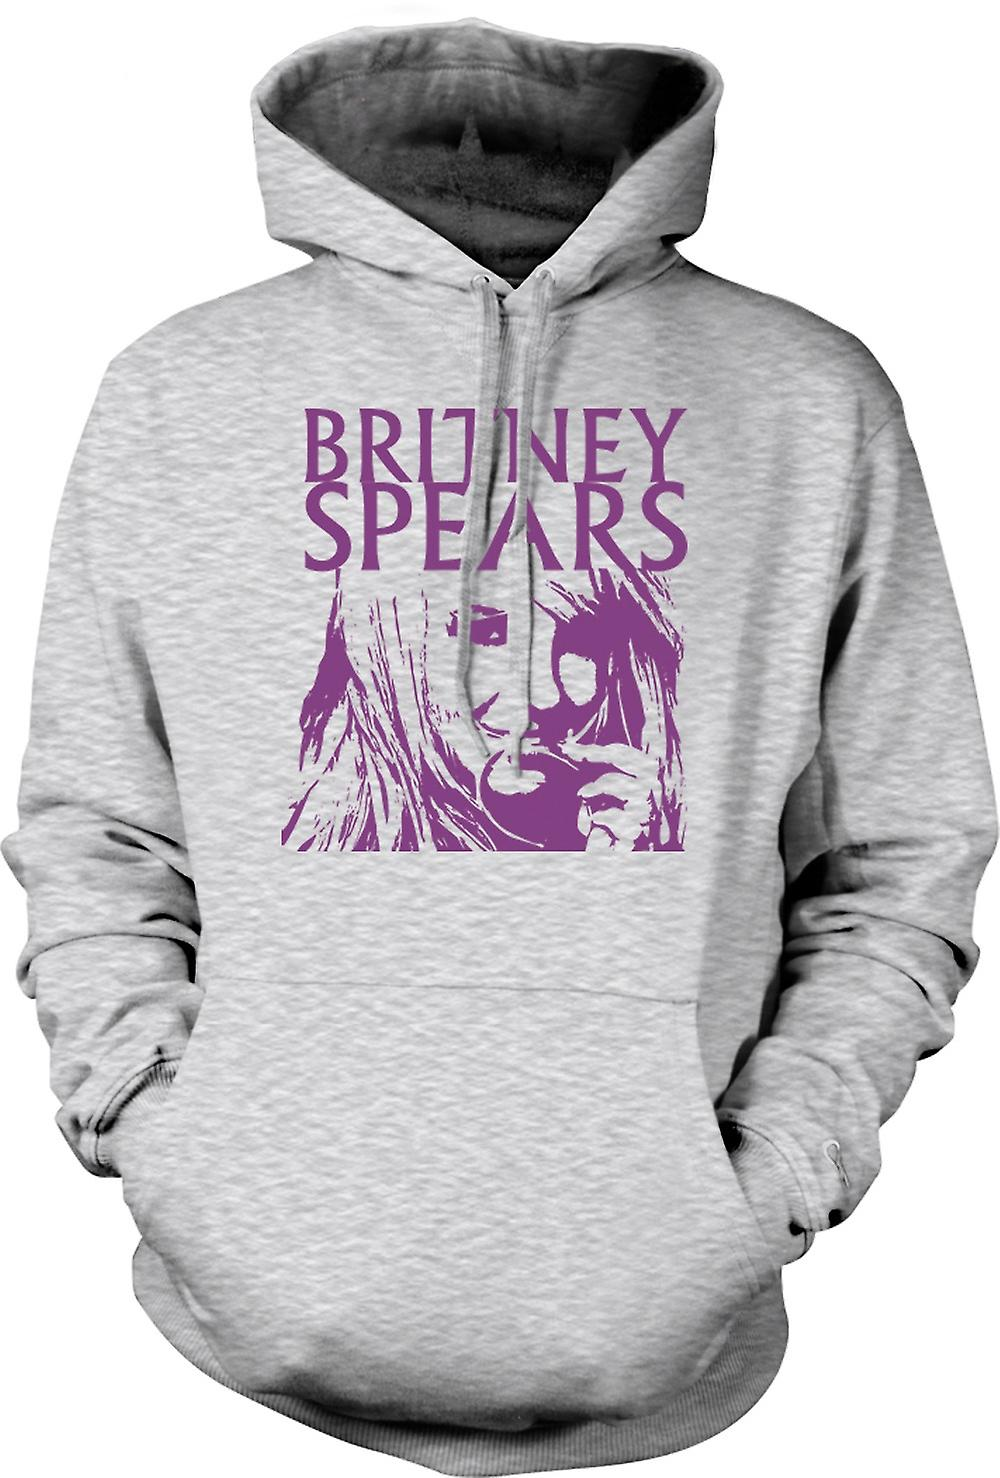 Mens hettegenser - Britney Spears legende